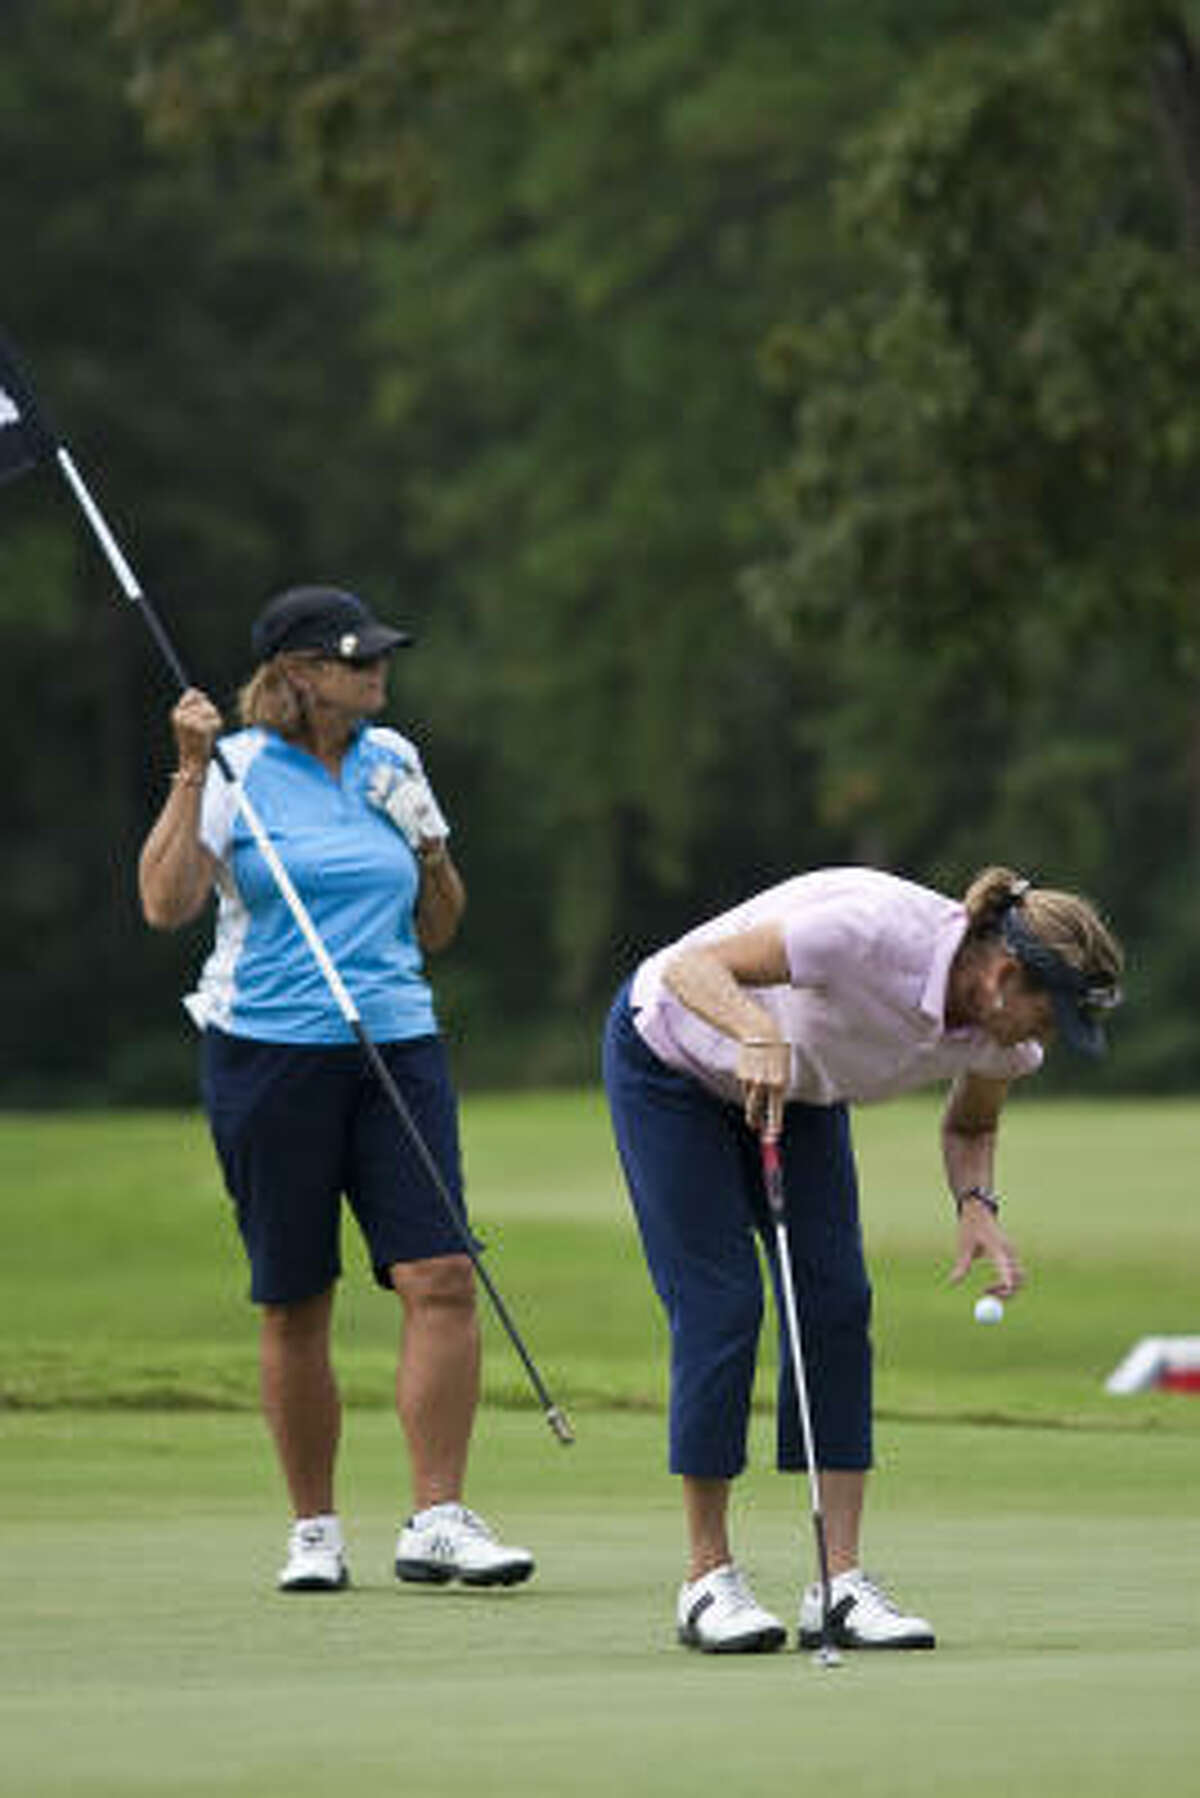 Marilyn Hardy retrieves her ball after sinking a putt on the 15th hole.